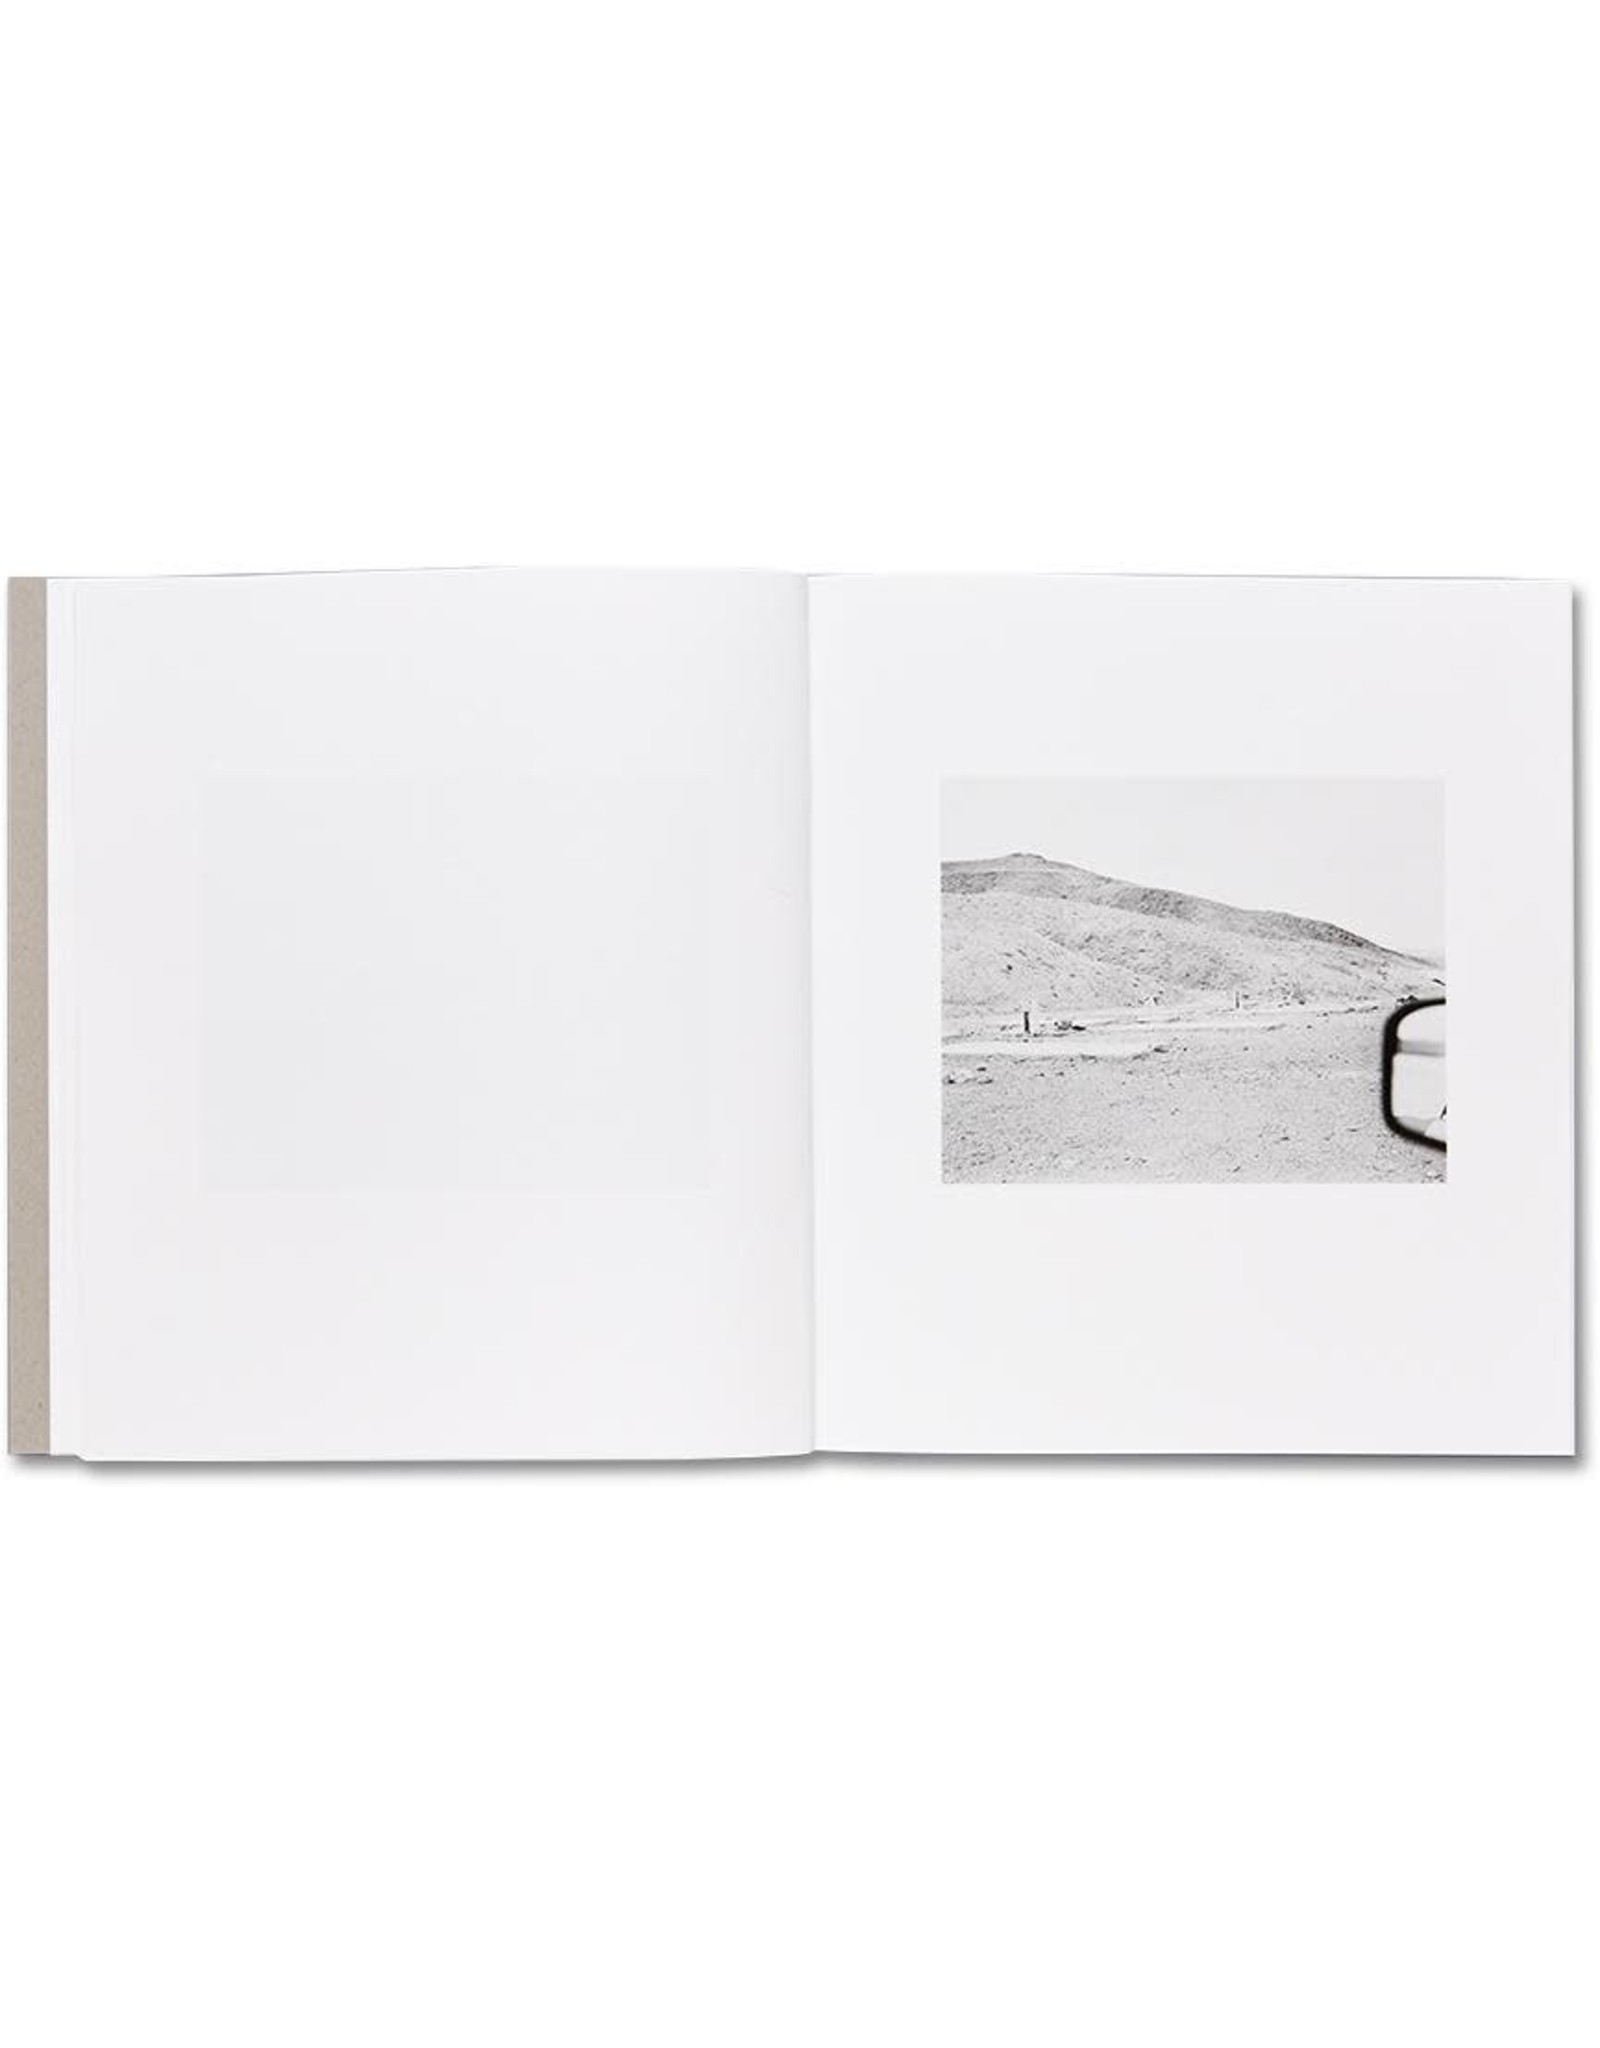 Susan Lipper: Domesticated Land (Signed)